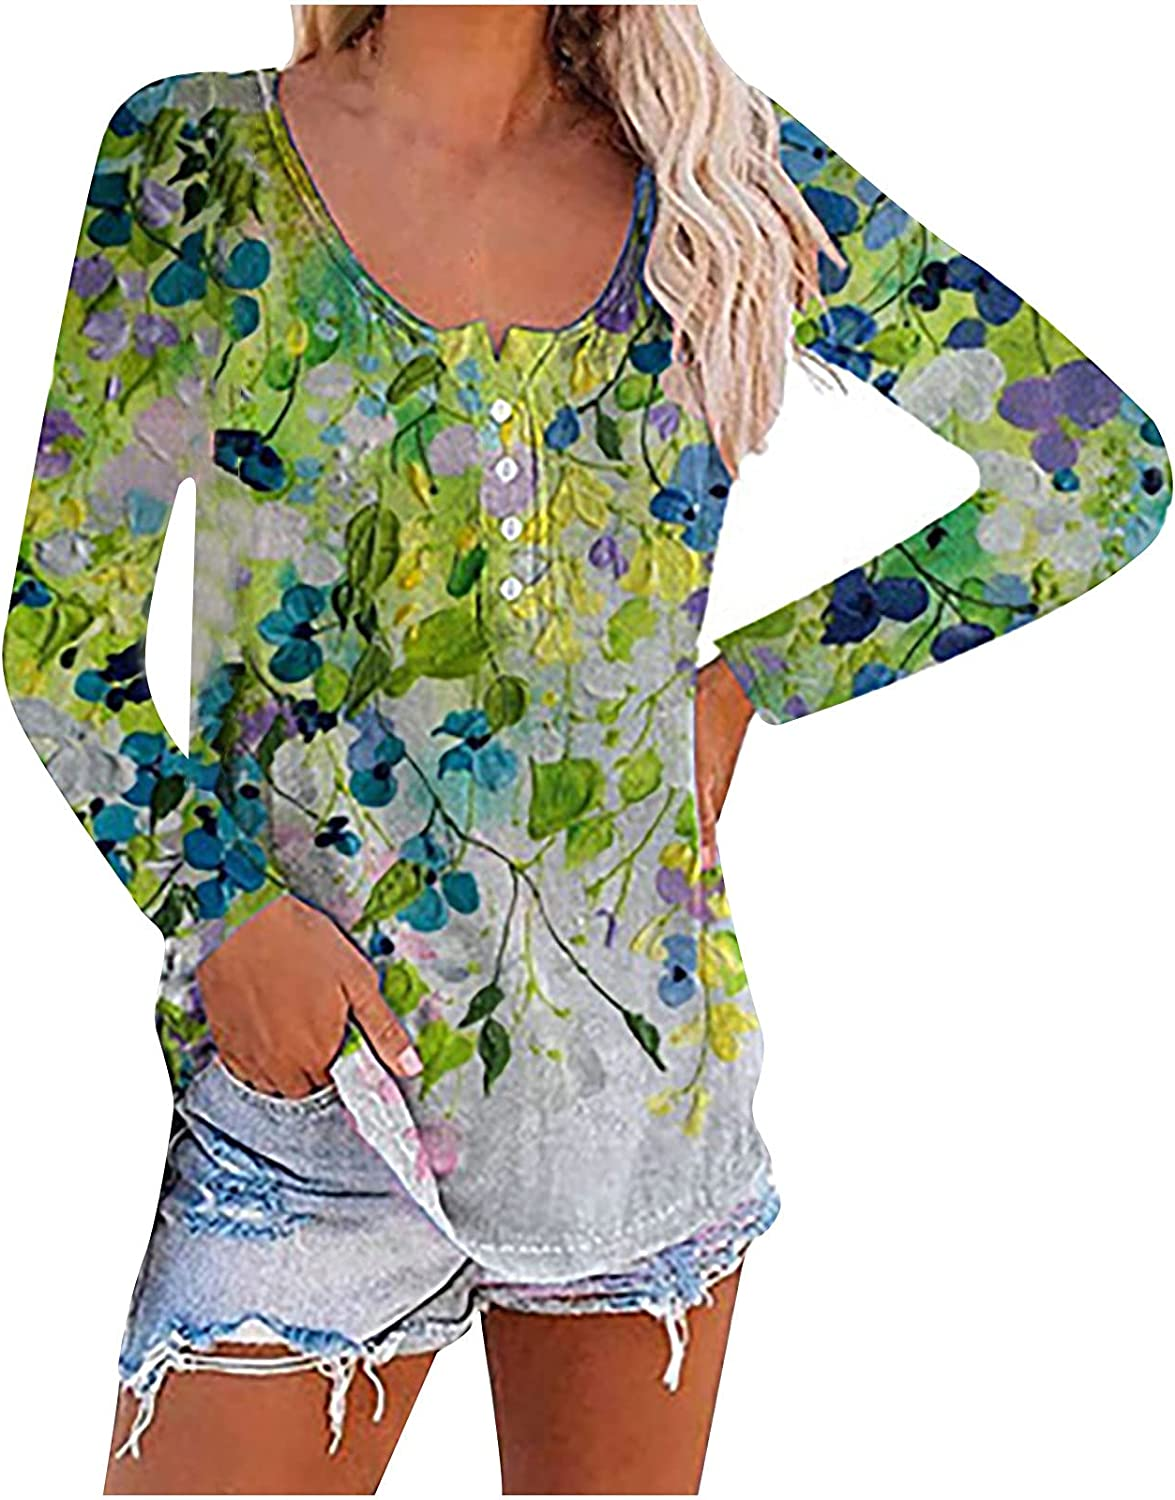 Floral Shirts for Women Long Sleeves, Womans Flower Loose T-Shirt Blouses, Ladies 1/4 Button up Crew Neck Tunic Tops